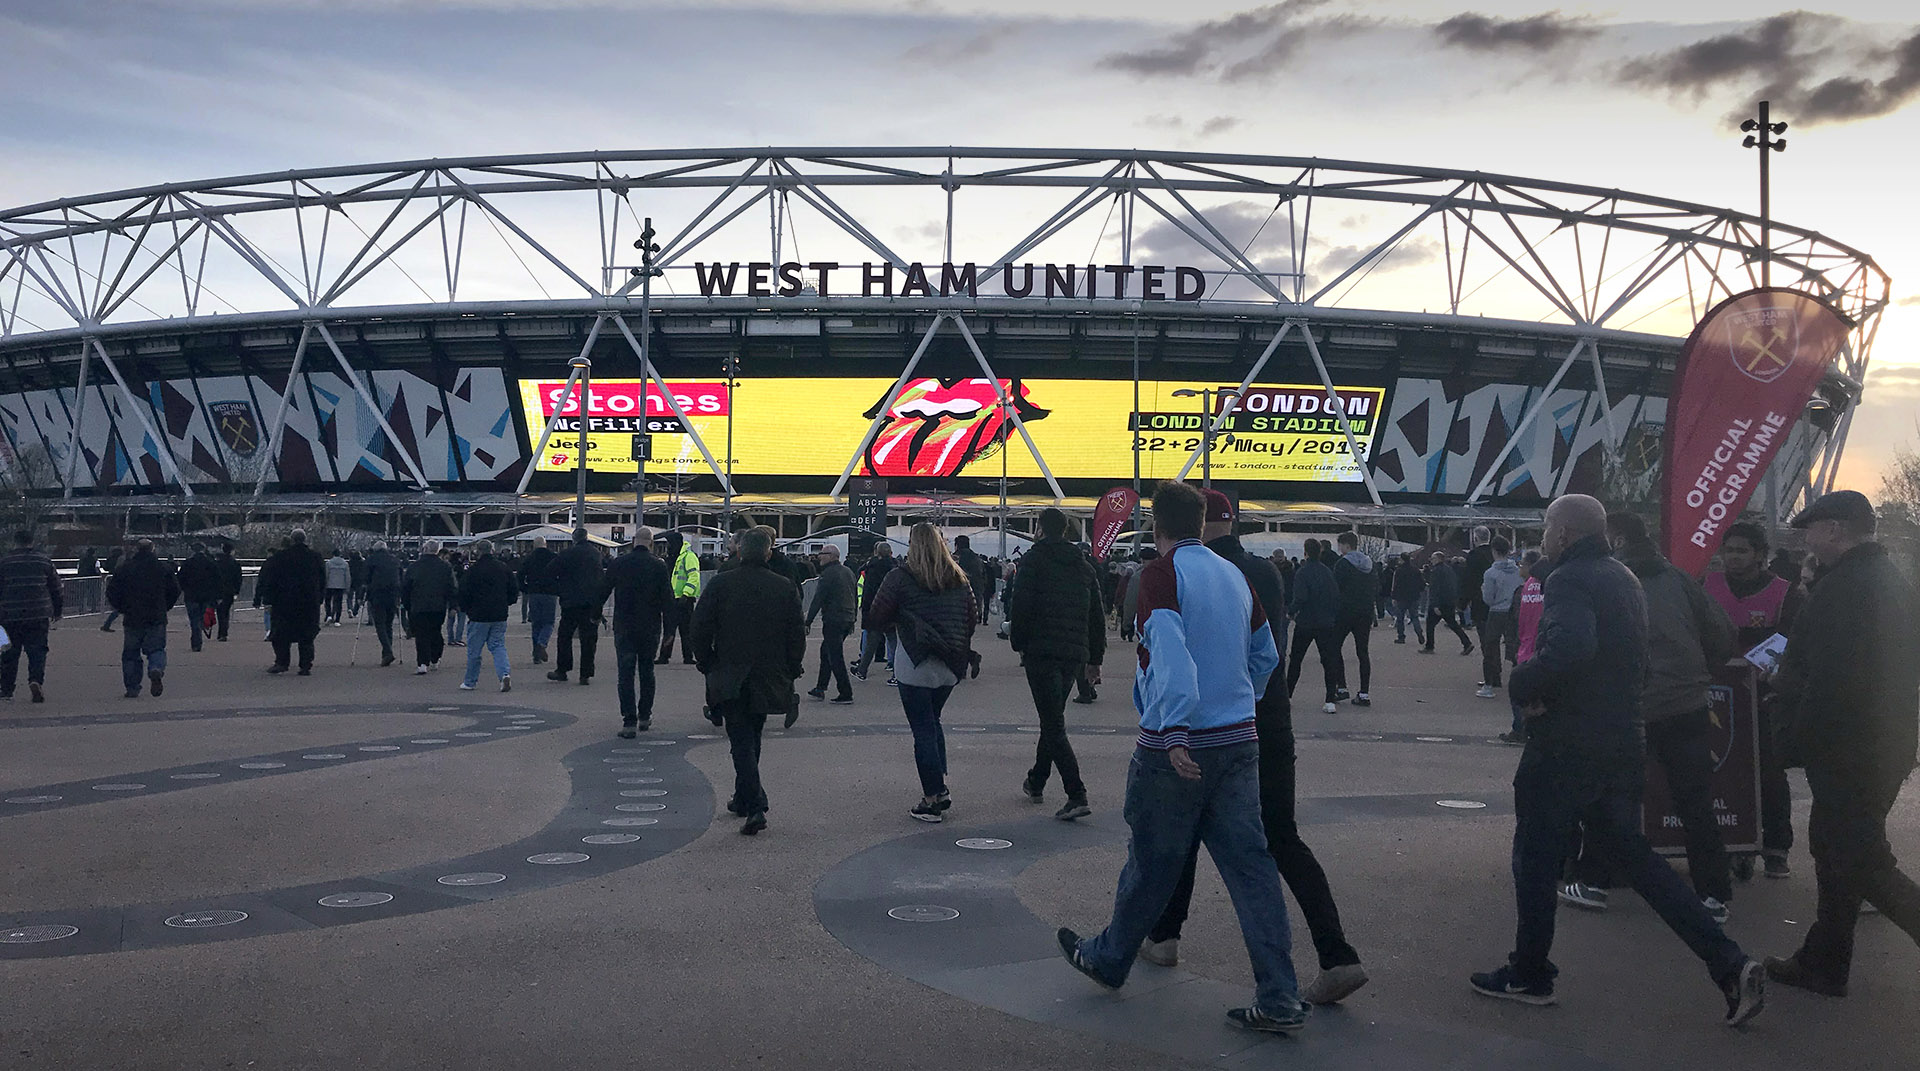 Stones promo in action at London Stadium